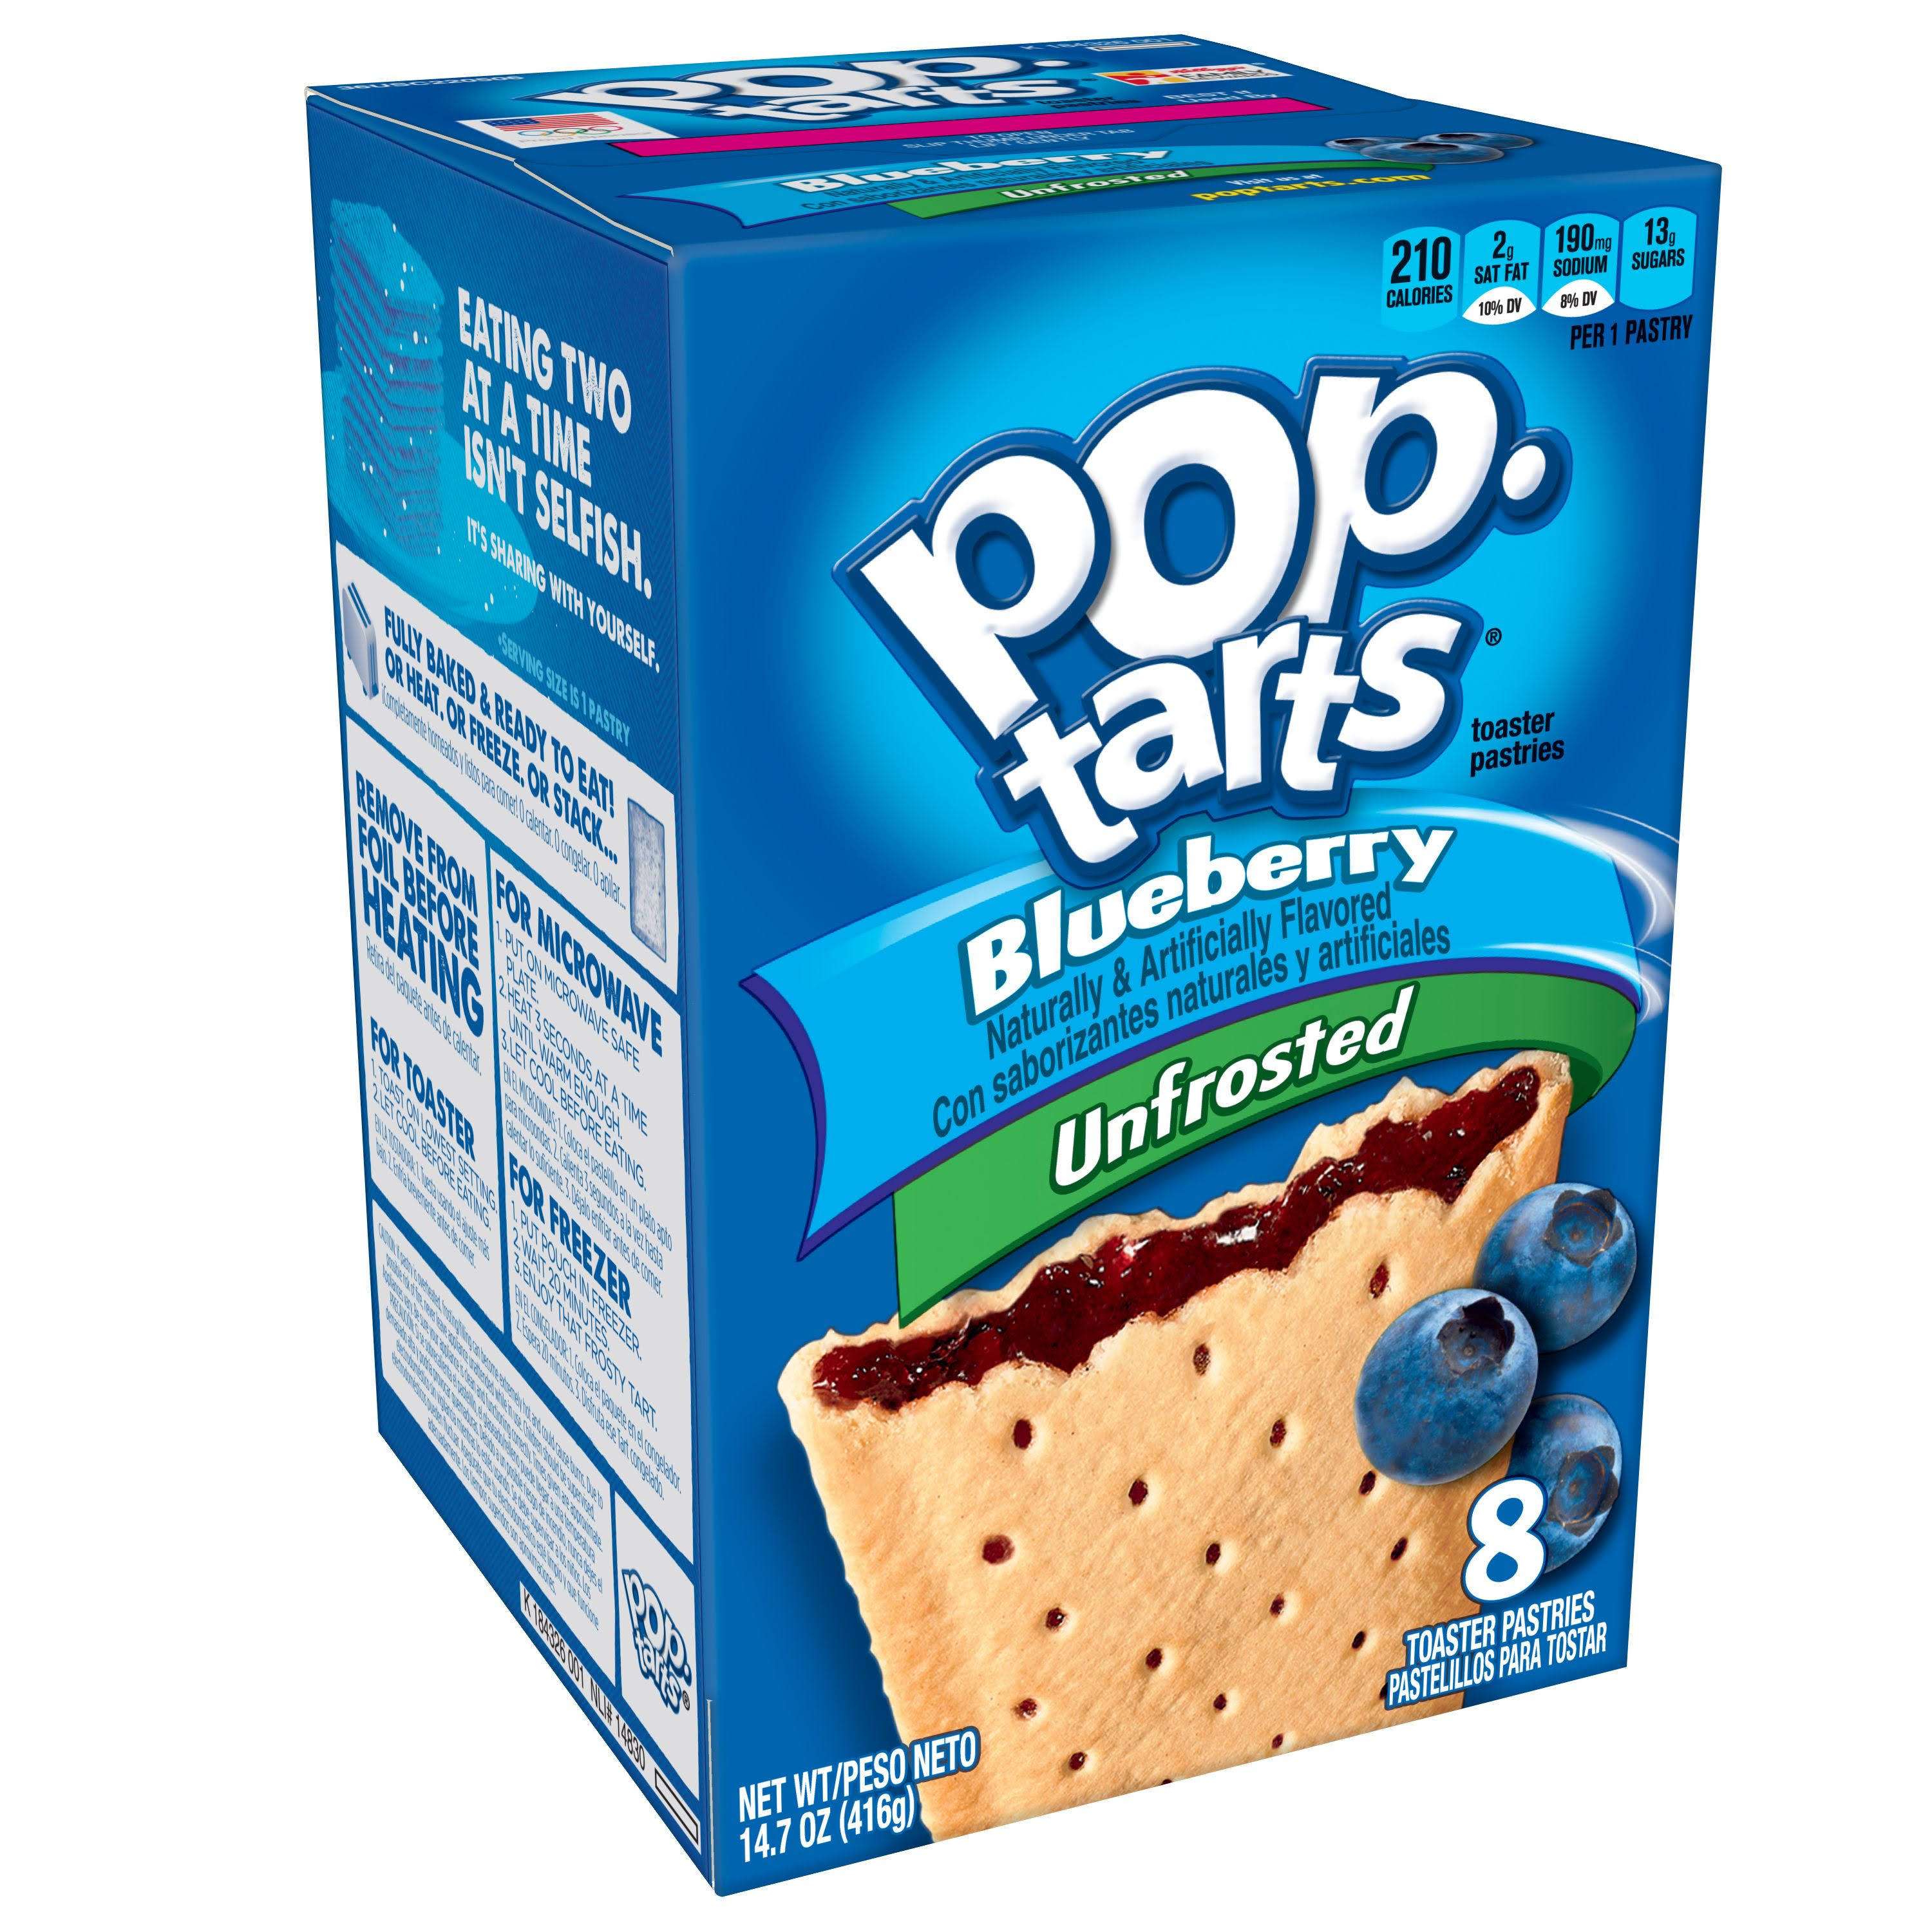 Kellogg's Blueberry Pop Tarts Unfrosted - 1Box, 8ct